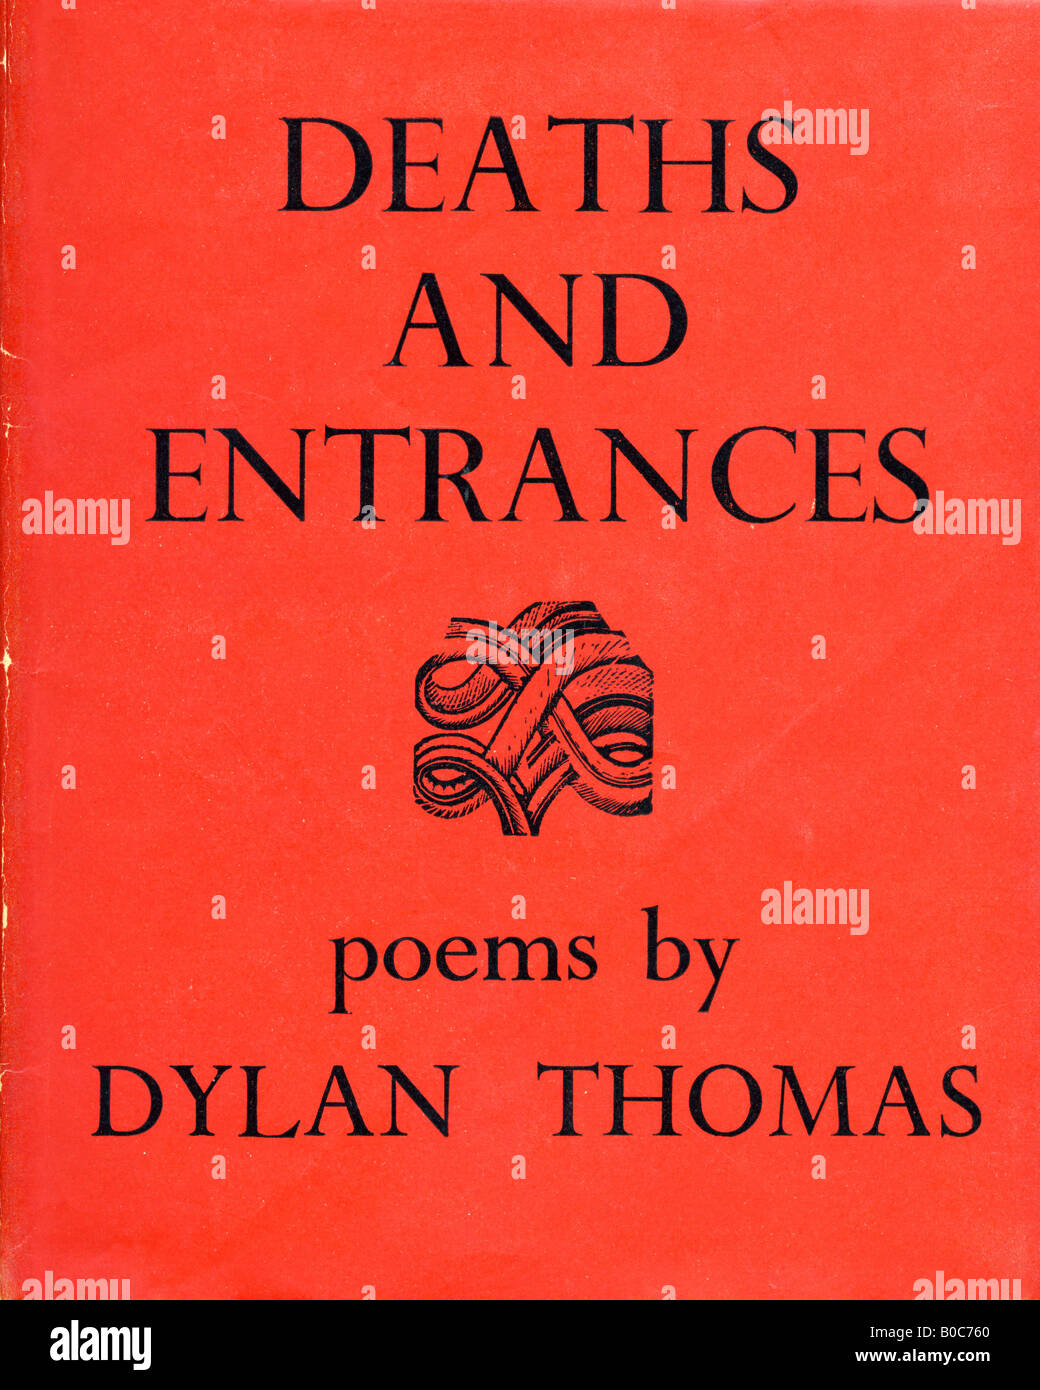 Deaths and Entrances Poems by Dylan Thomas Hardback Book with Cover Published by Dent & Sons London 1946 FOR - Stock Image